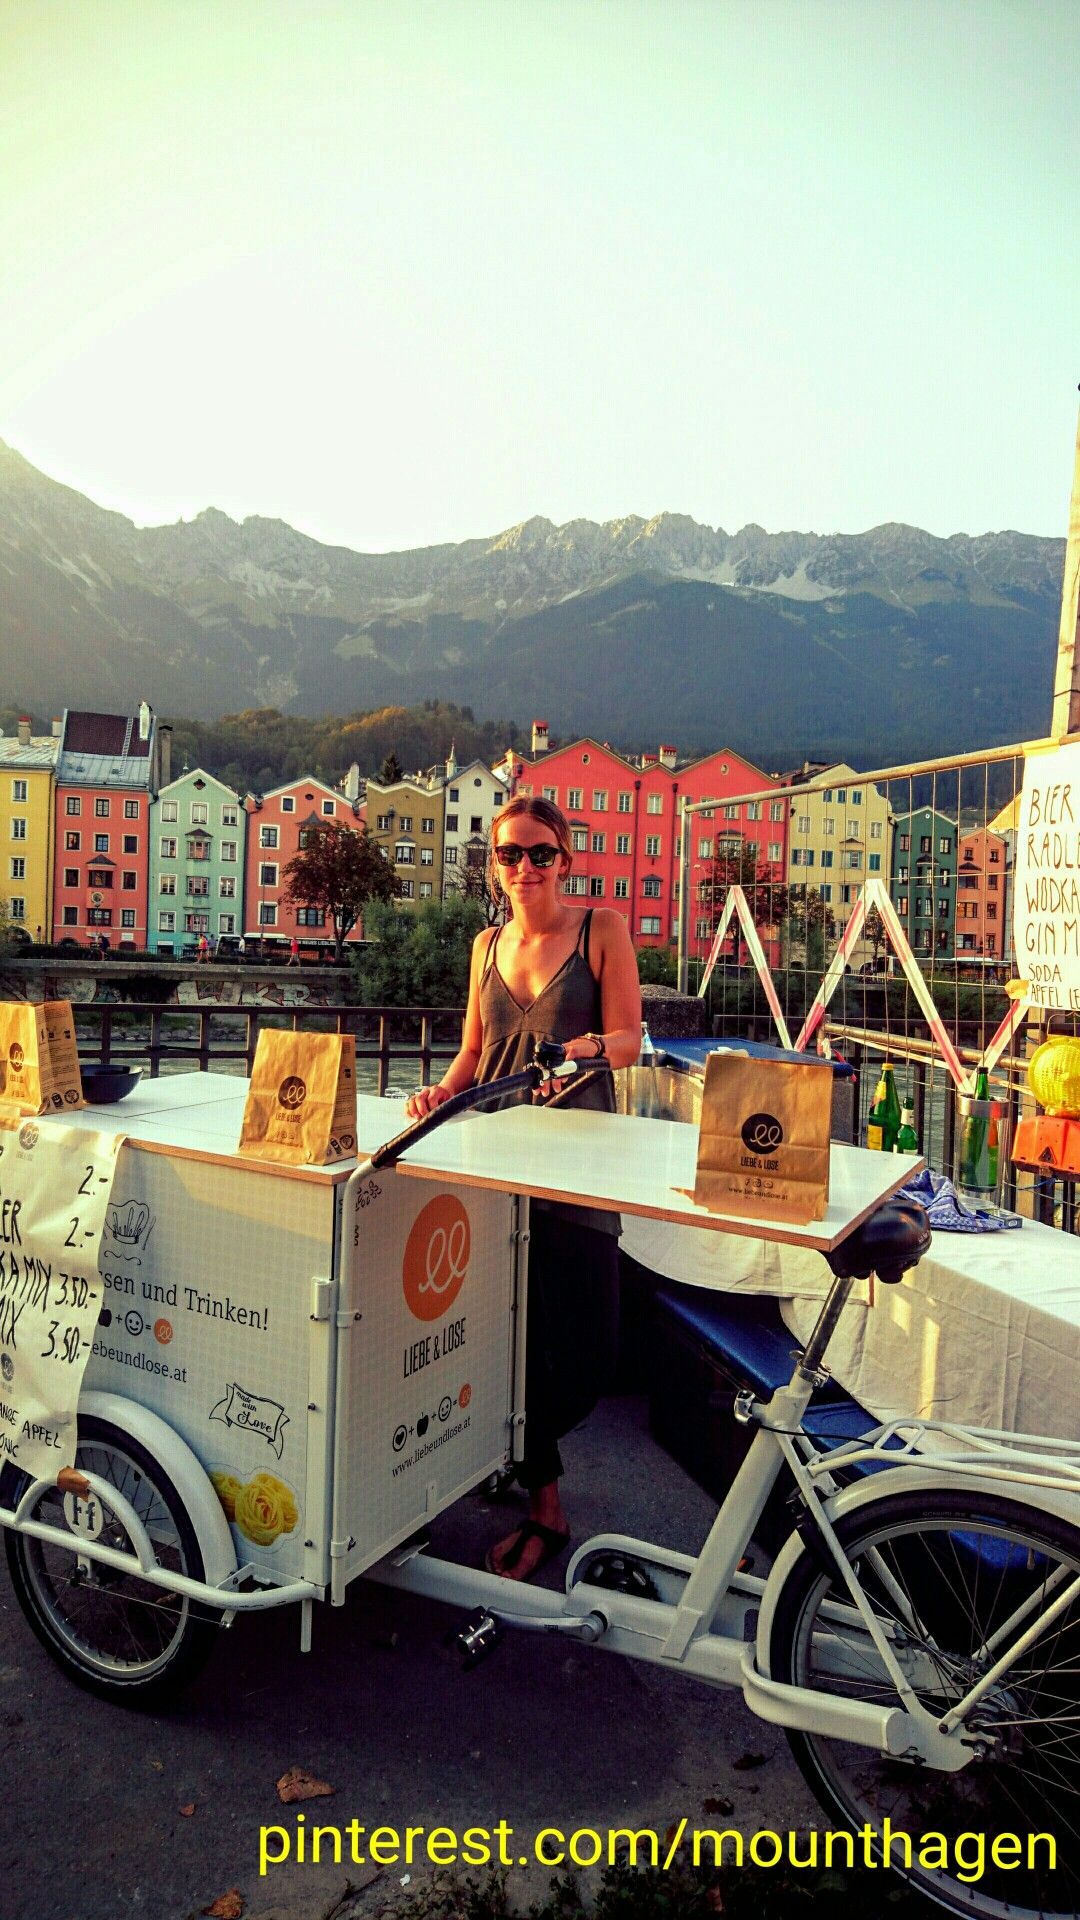 New Liebe Lose In Location In Innsbruck In The City Center At